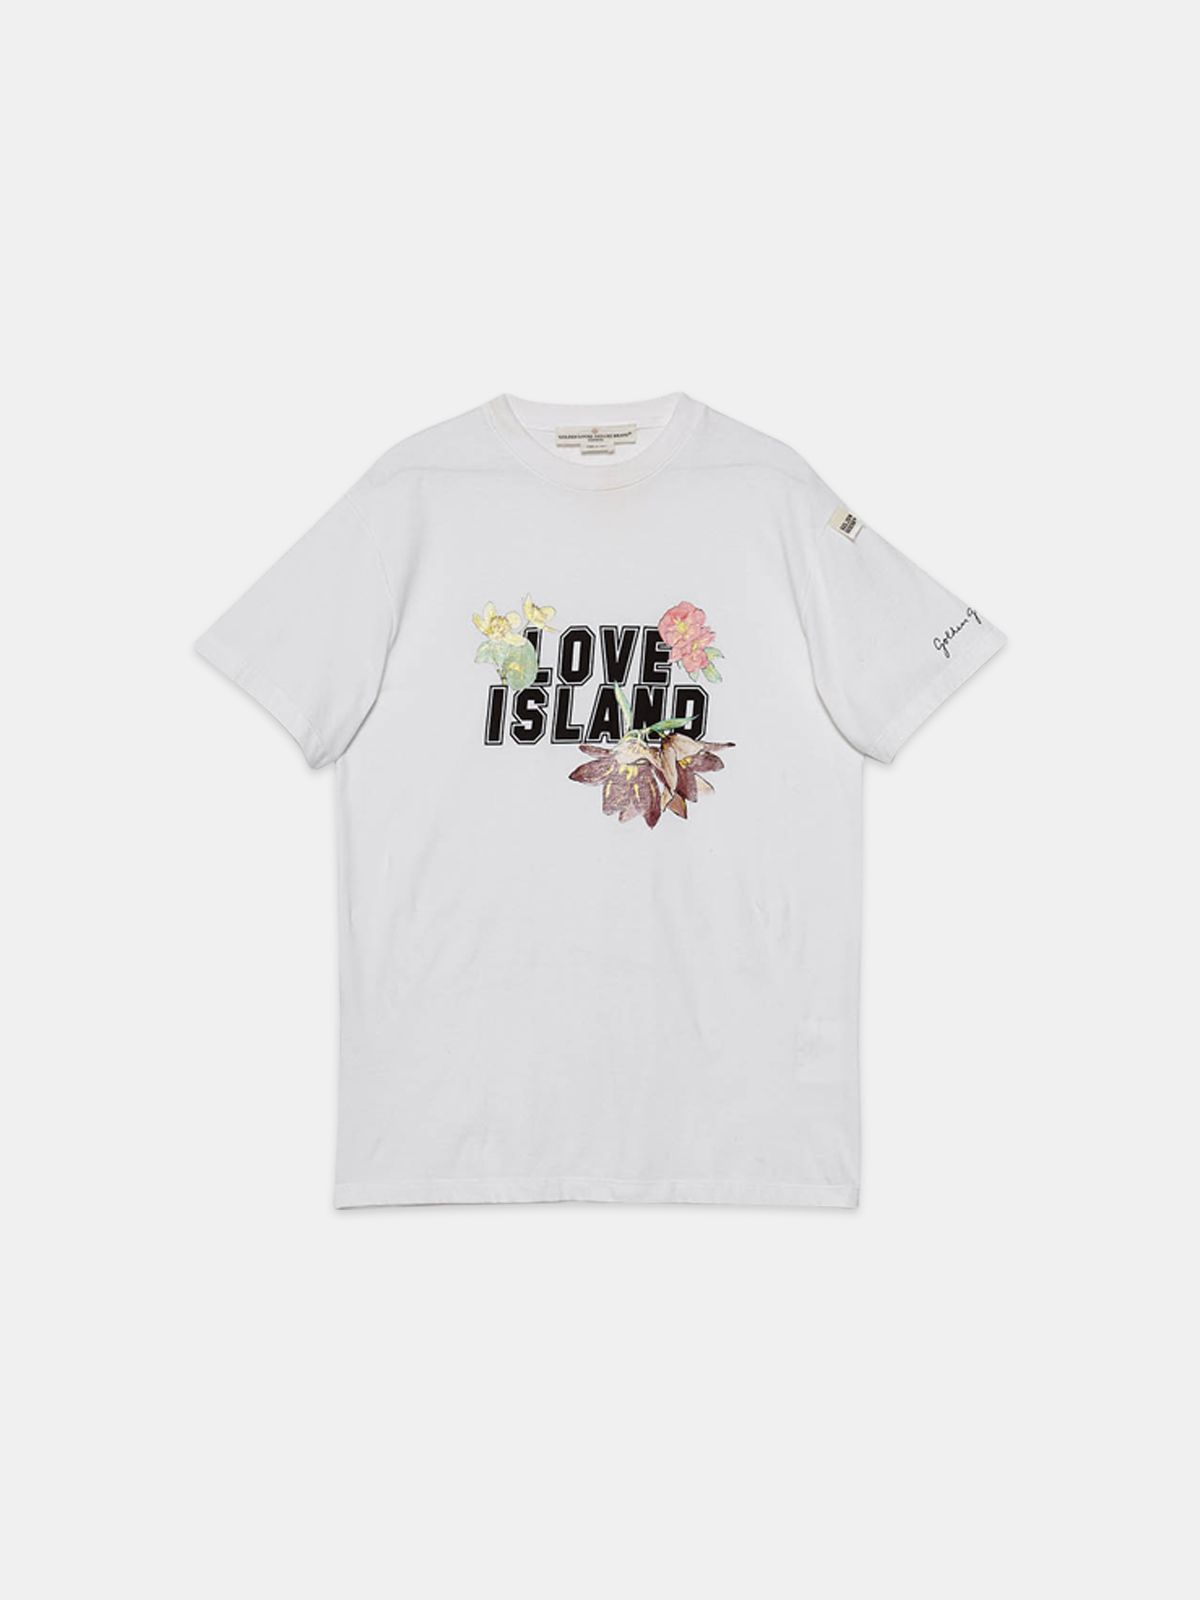 Golden Goose - Golden T-shirt with Love Island print in